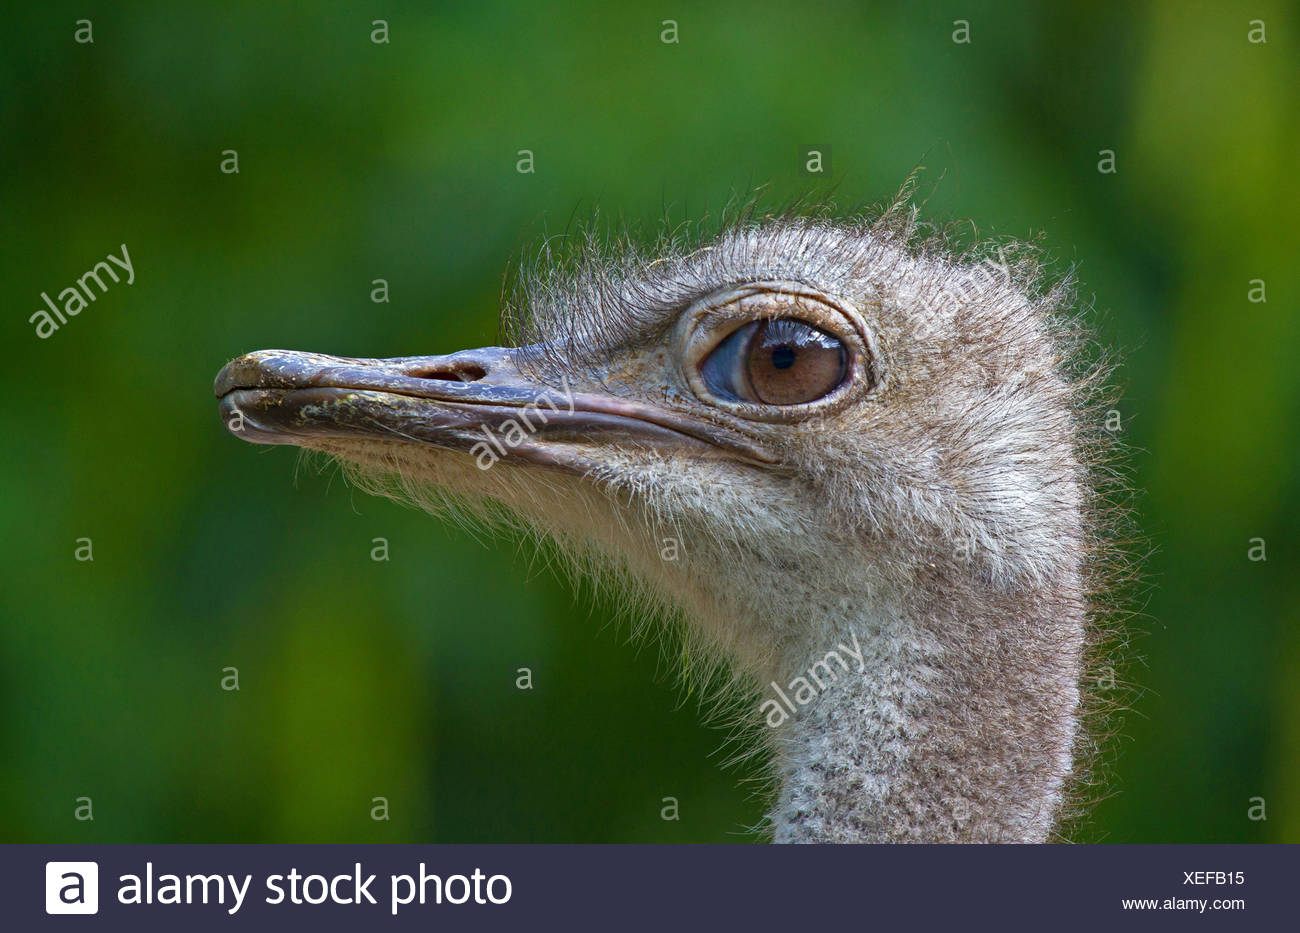 ostrich (Struthio camelus australis), portrait, Germany - Stock Image